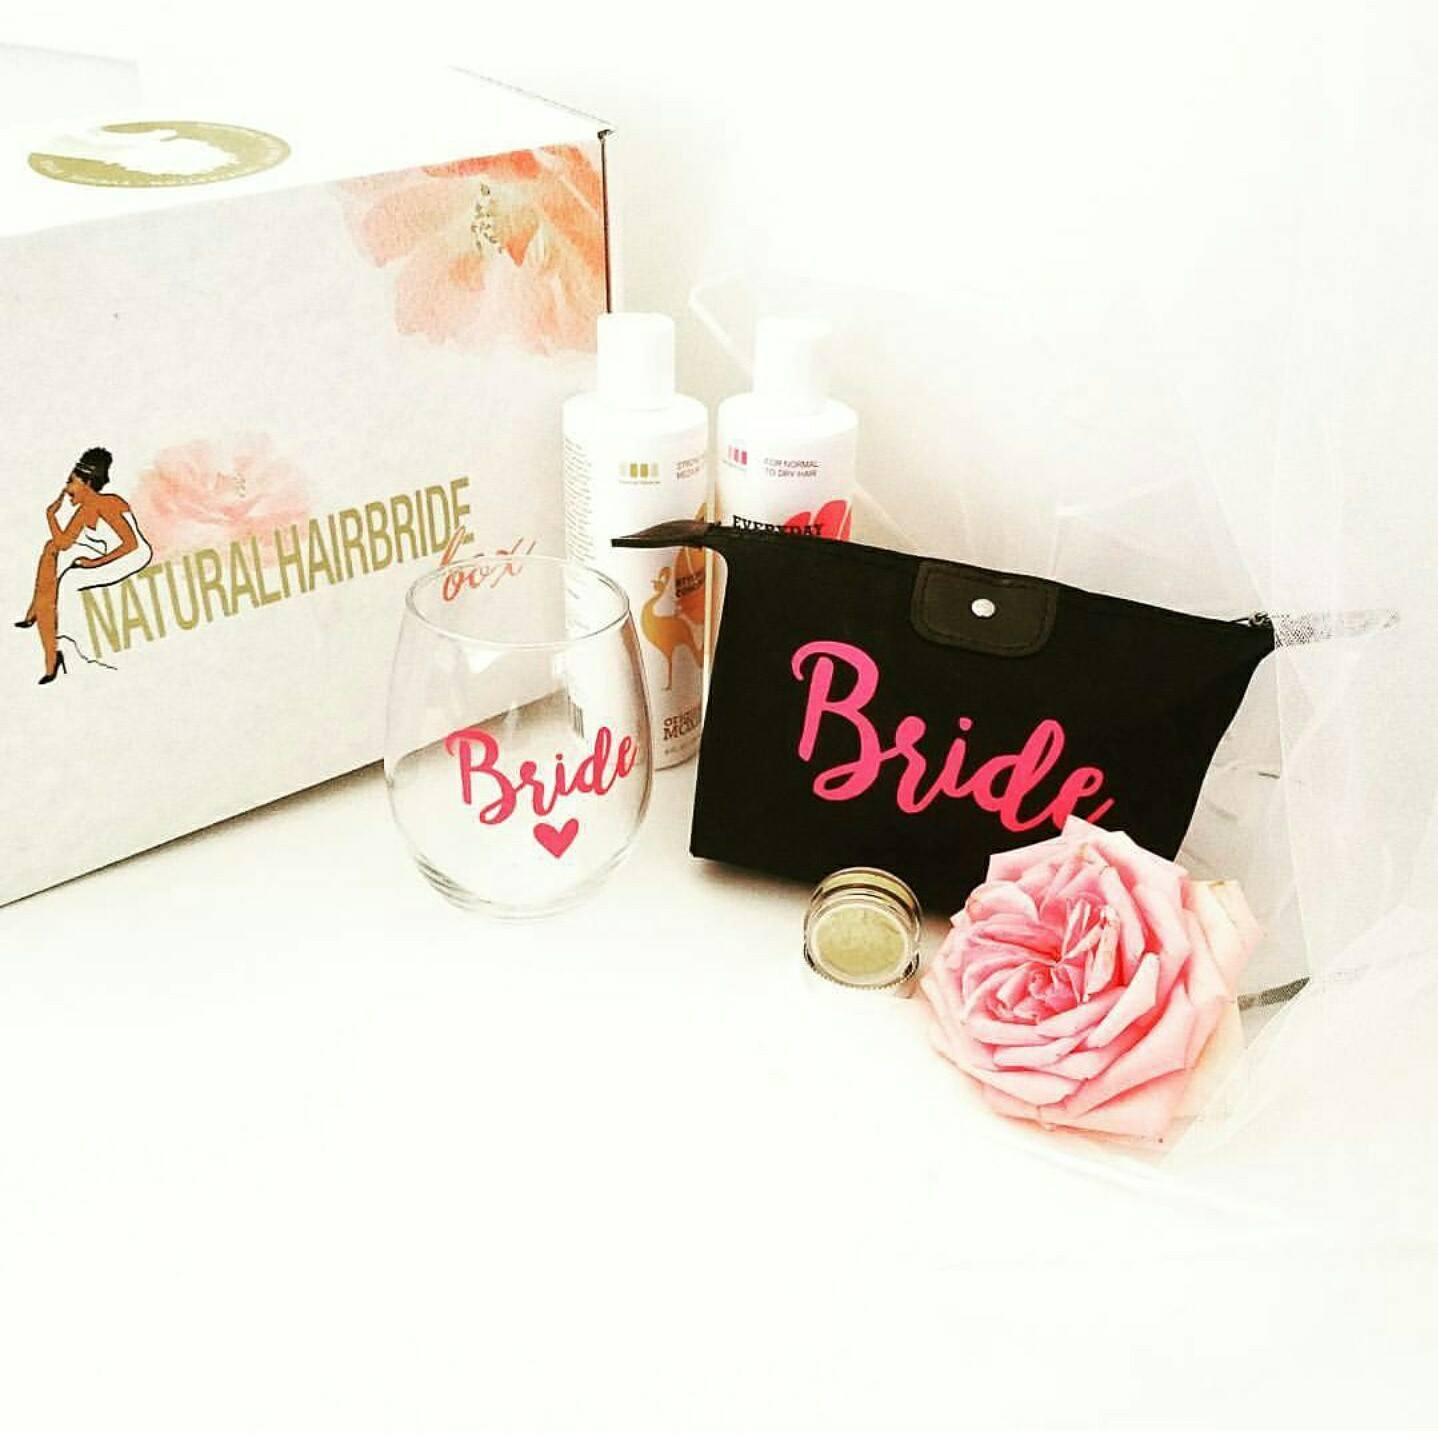 Beauty Subscription Boxes for Women of Color, Natural Hair Bride Box